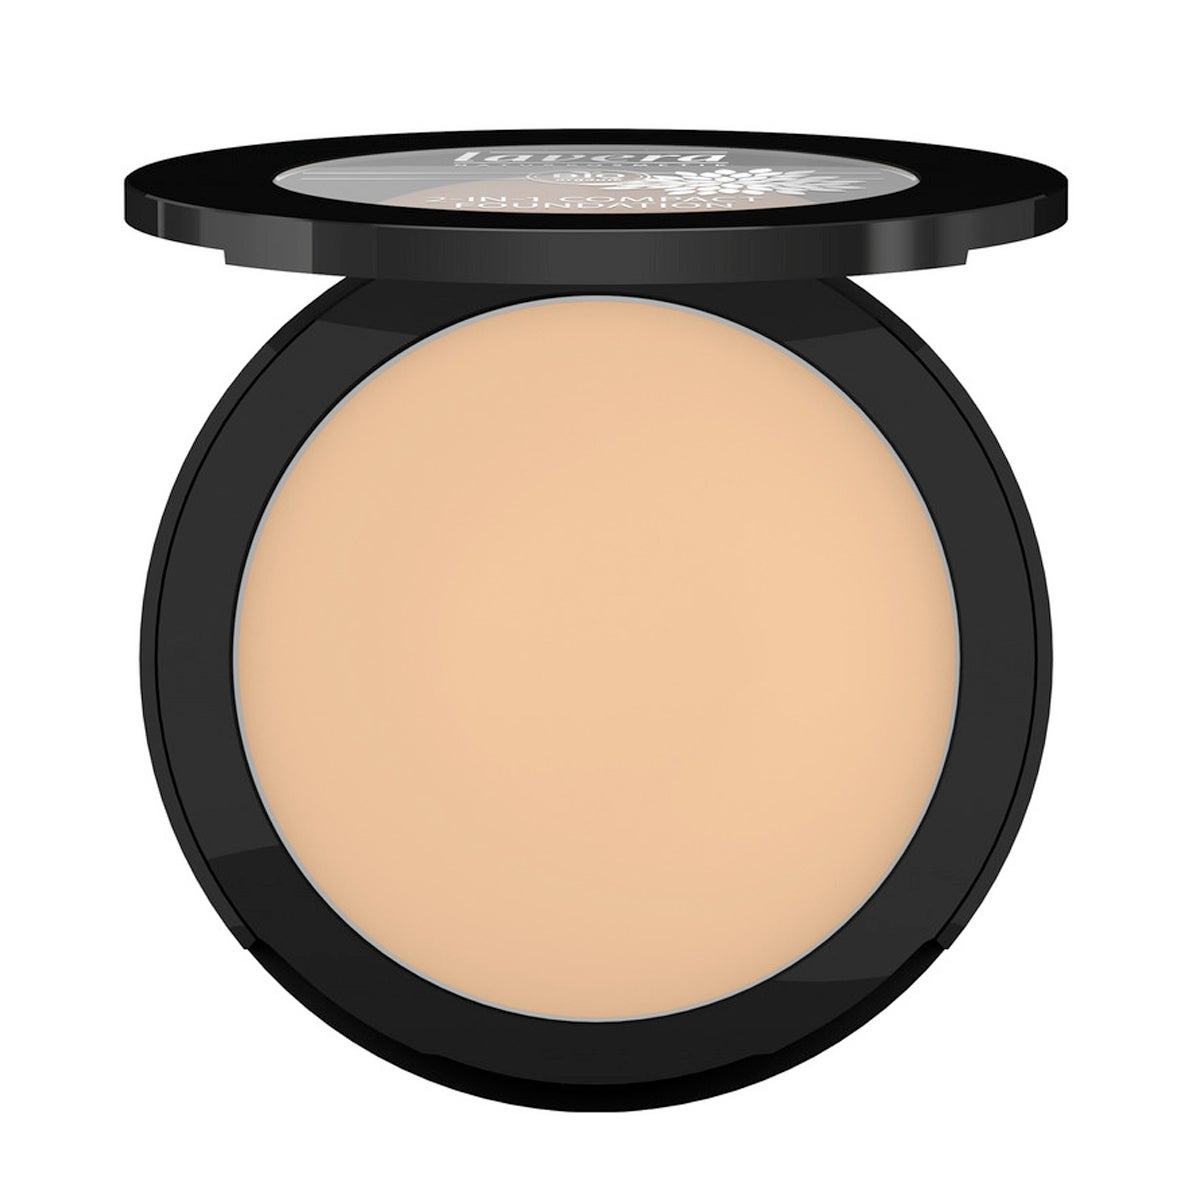 Lavera 2in1 Compact Foundation